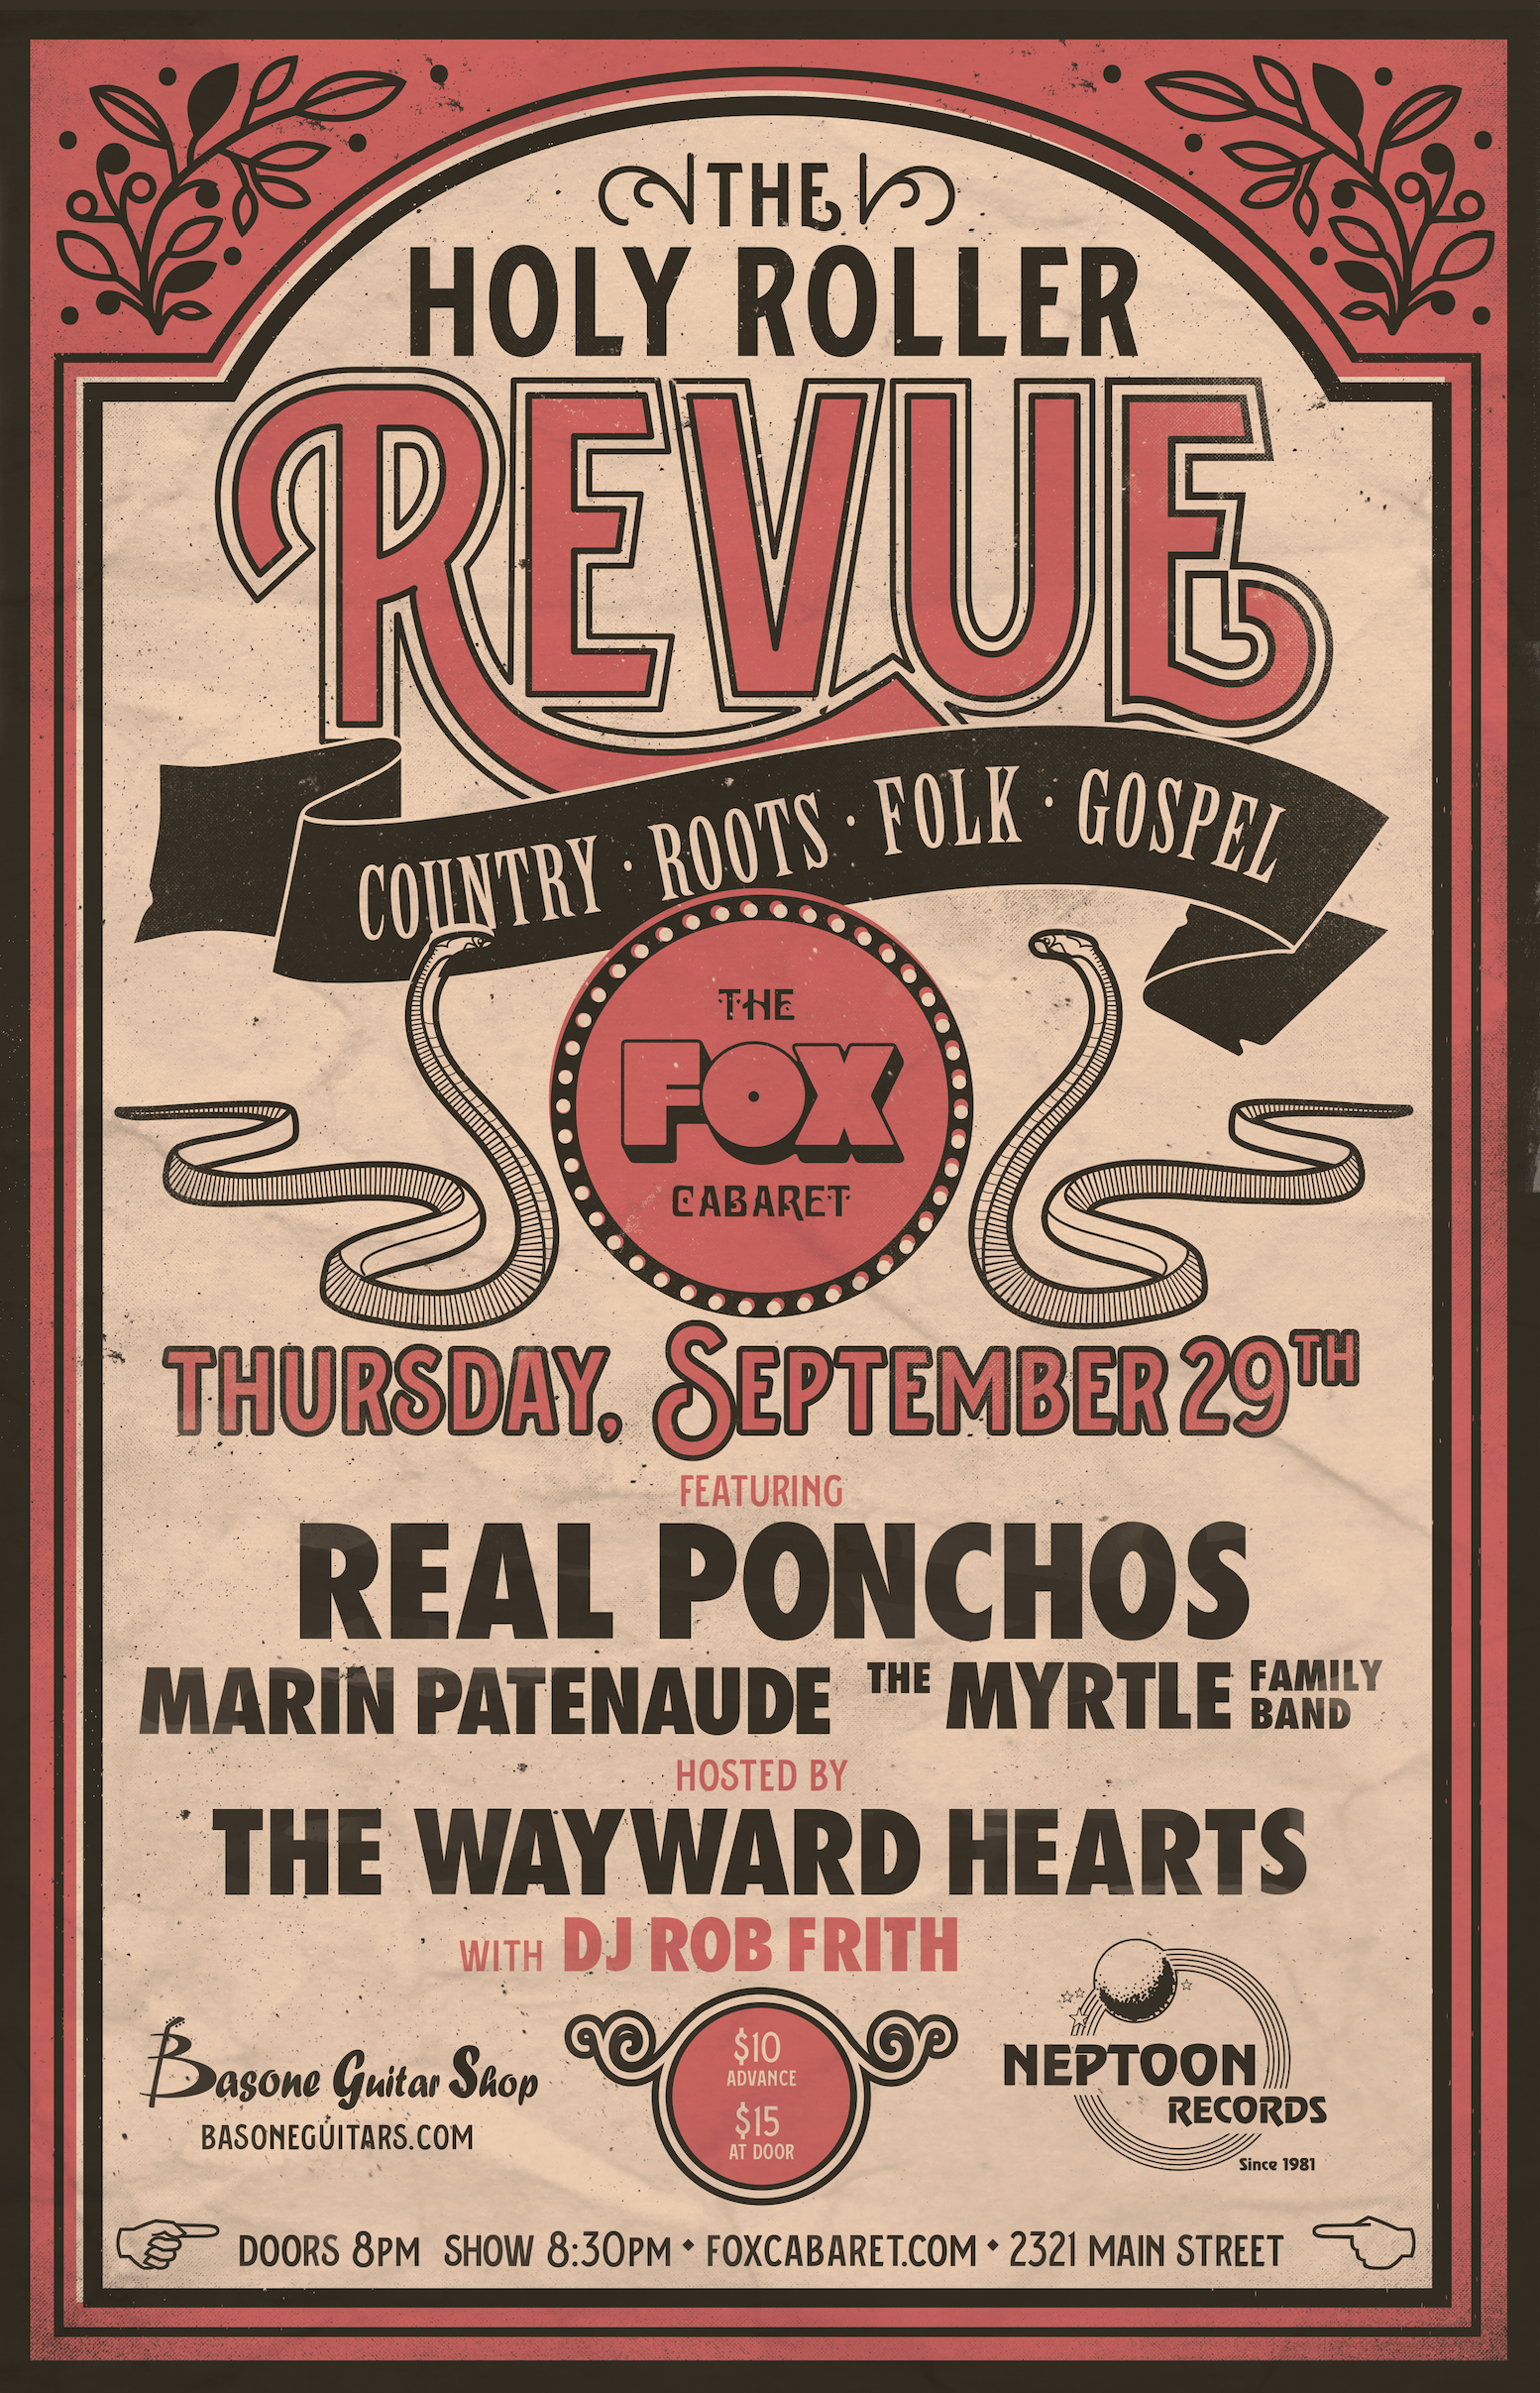 Vintage inspired Poster design for Country/Roots/Folk Music Series in Vancouver